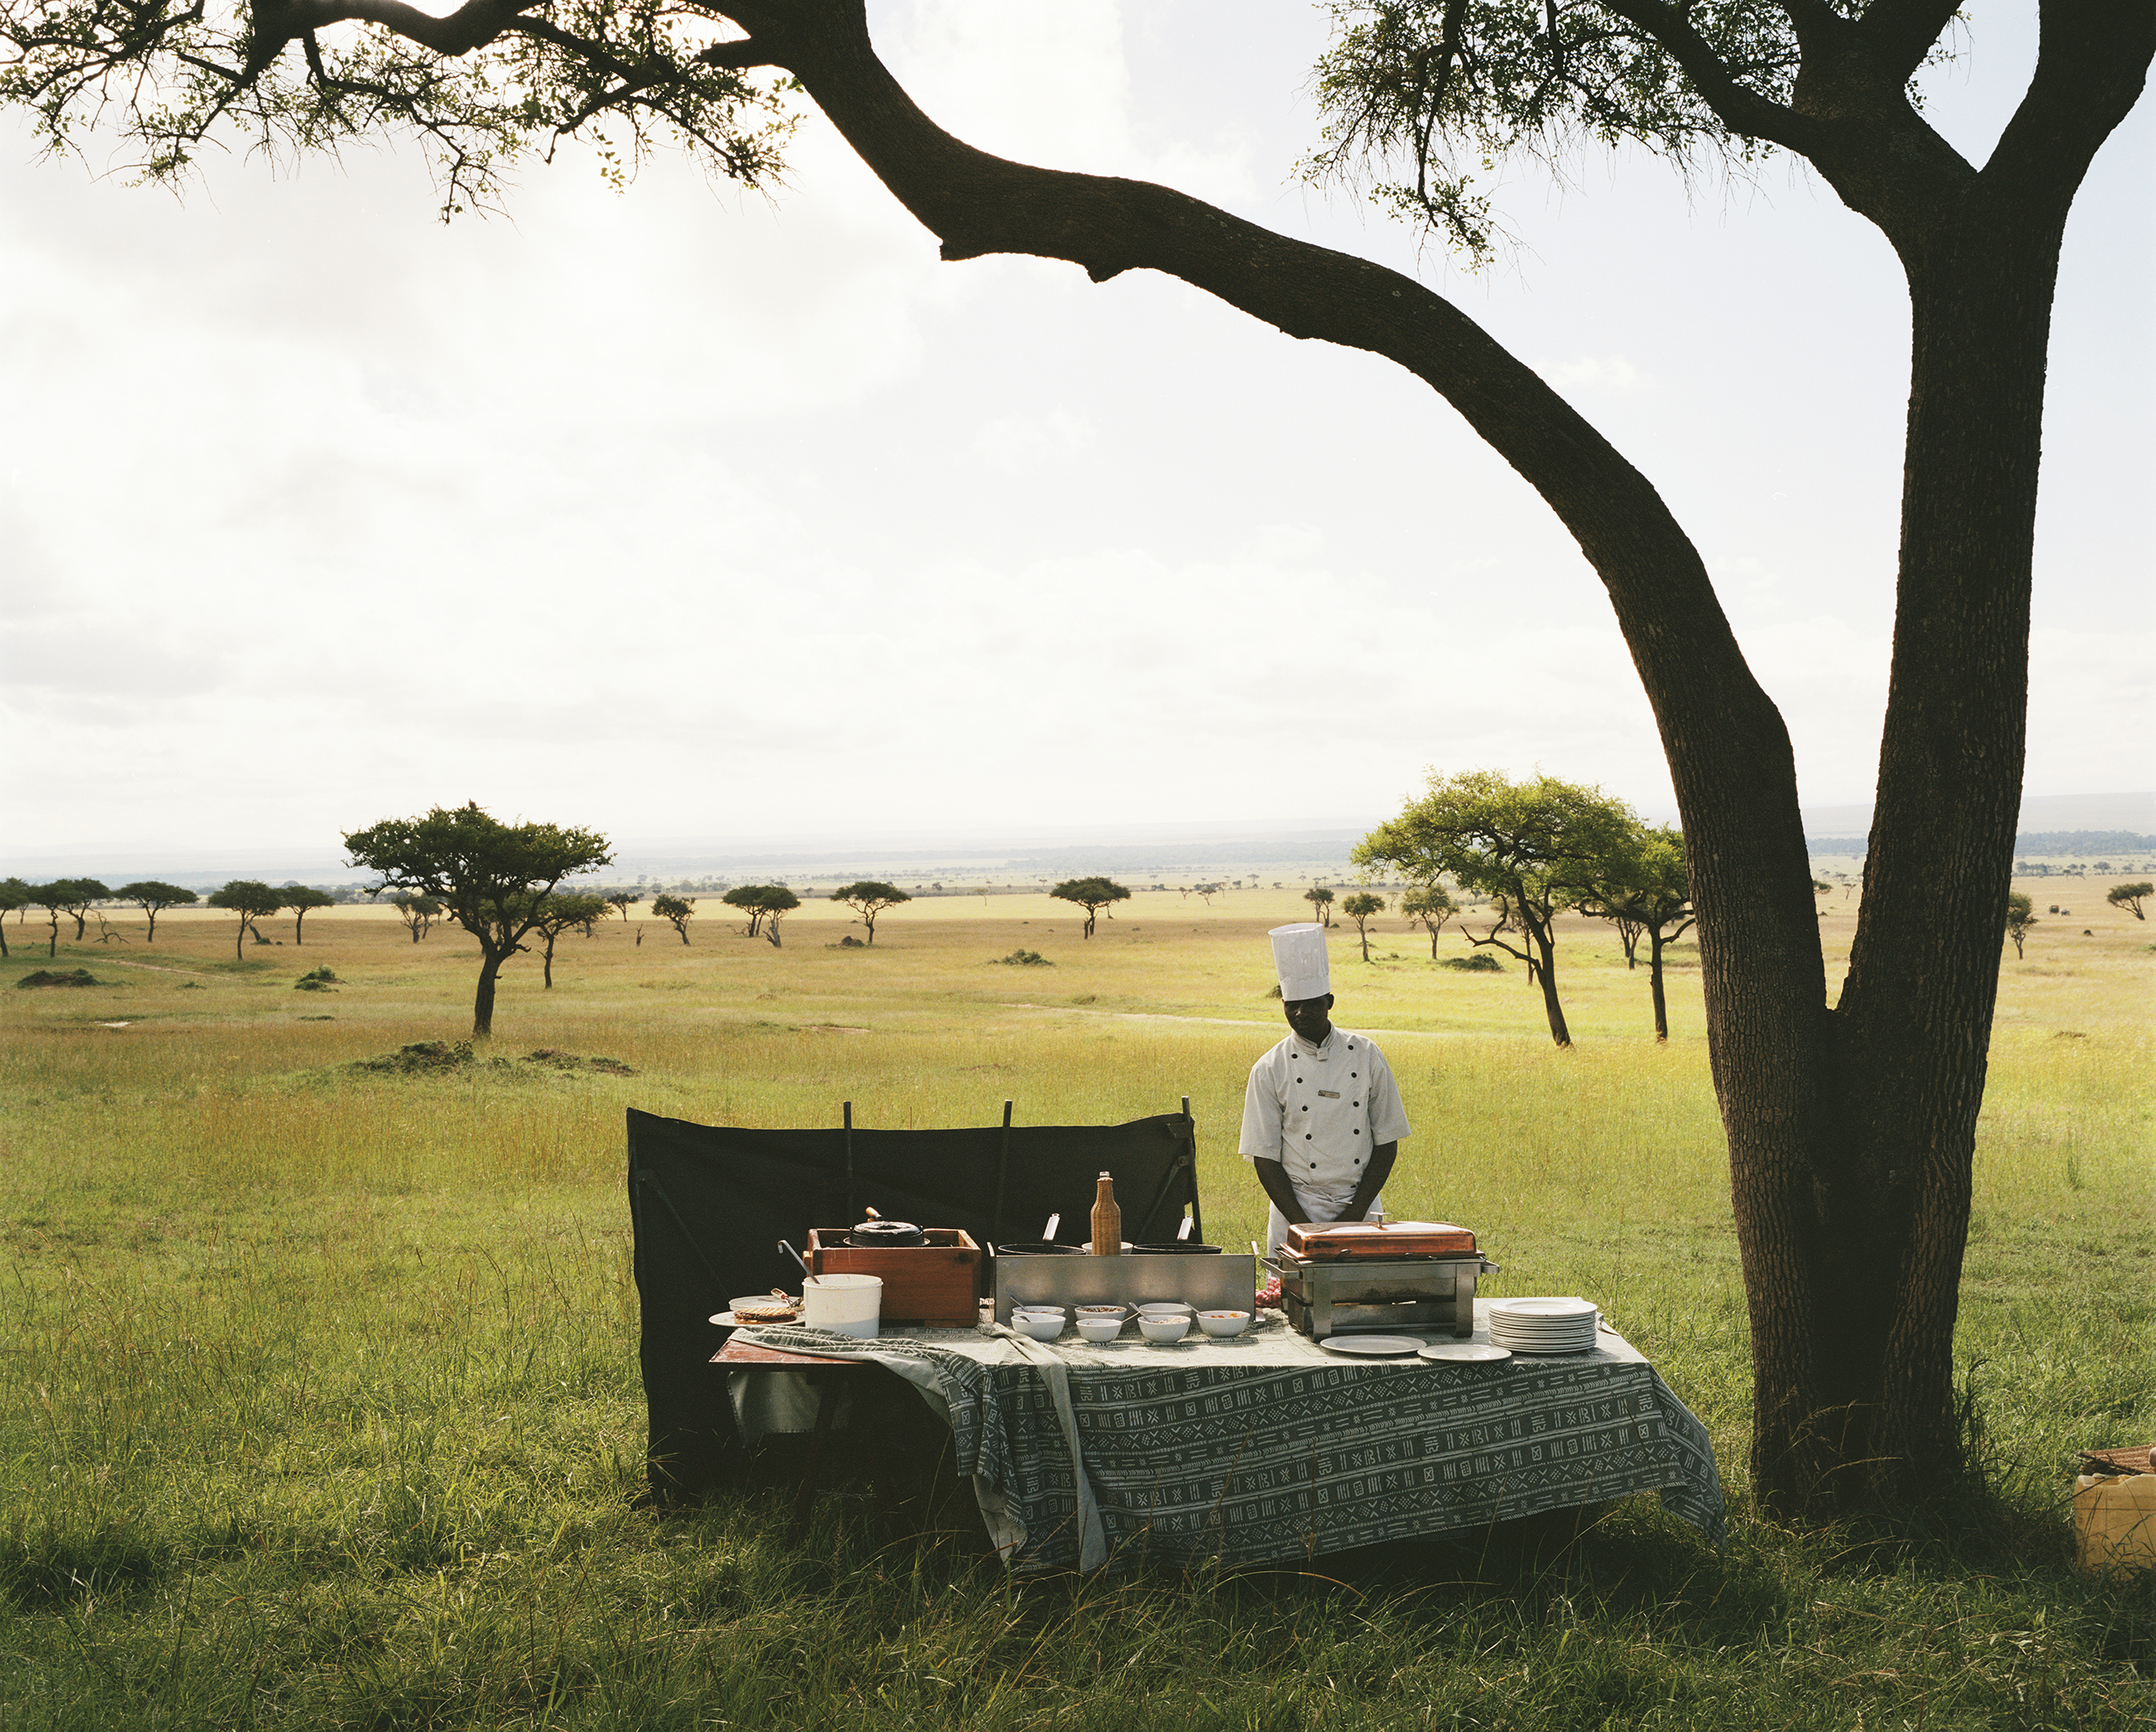 A chef from a nearby luxury lodge waits for his guests to arrive from a hot air balloon excursion before serving them champagne in the middle of the Maasai Mara National Reserve, Kenya.                               2012